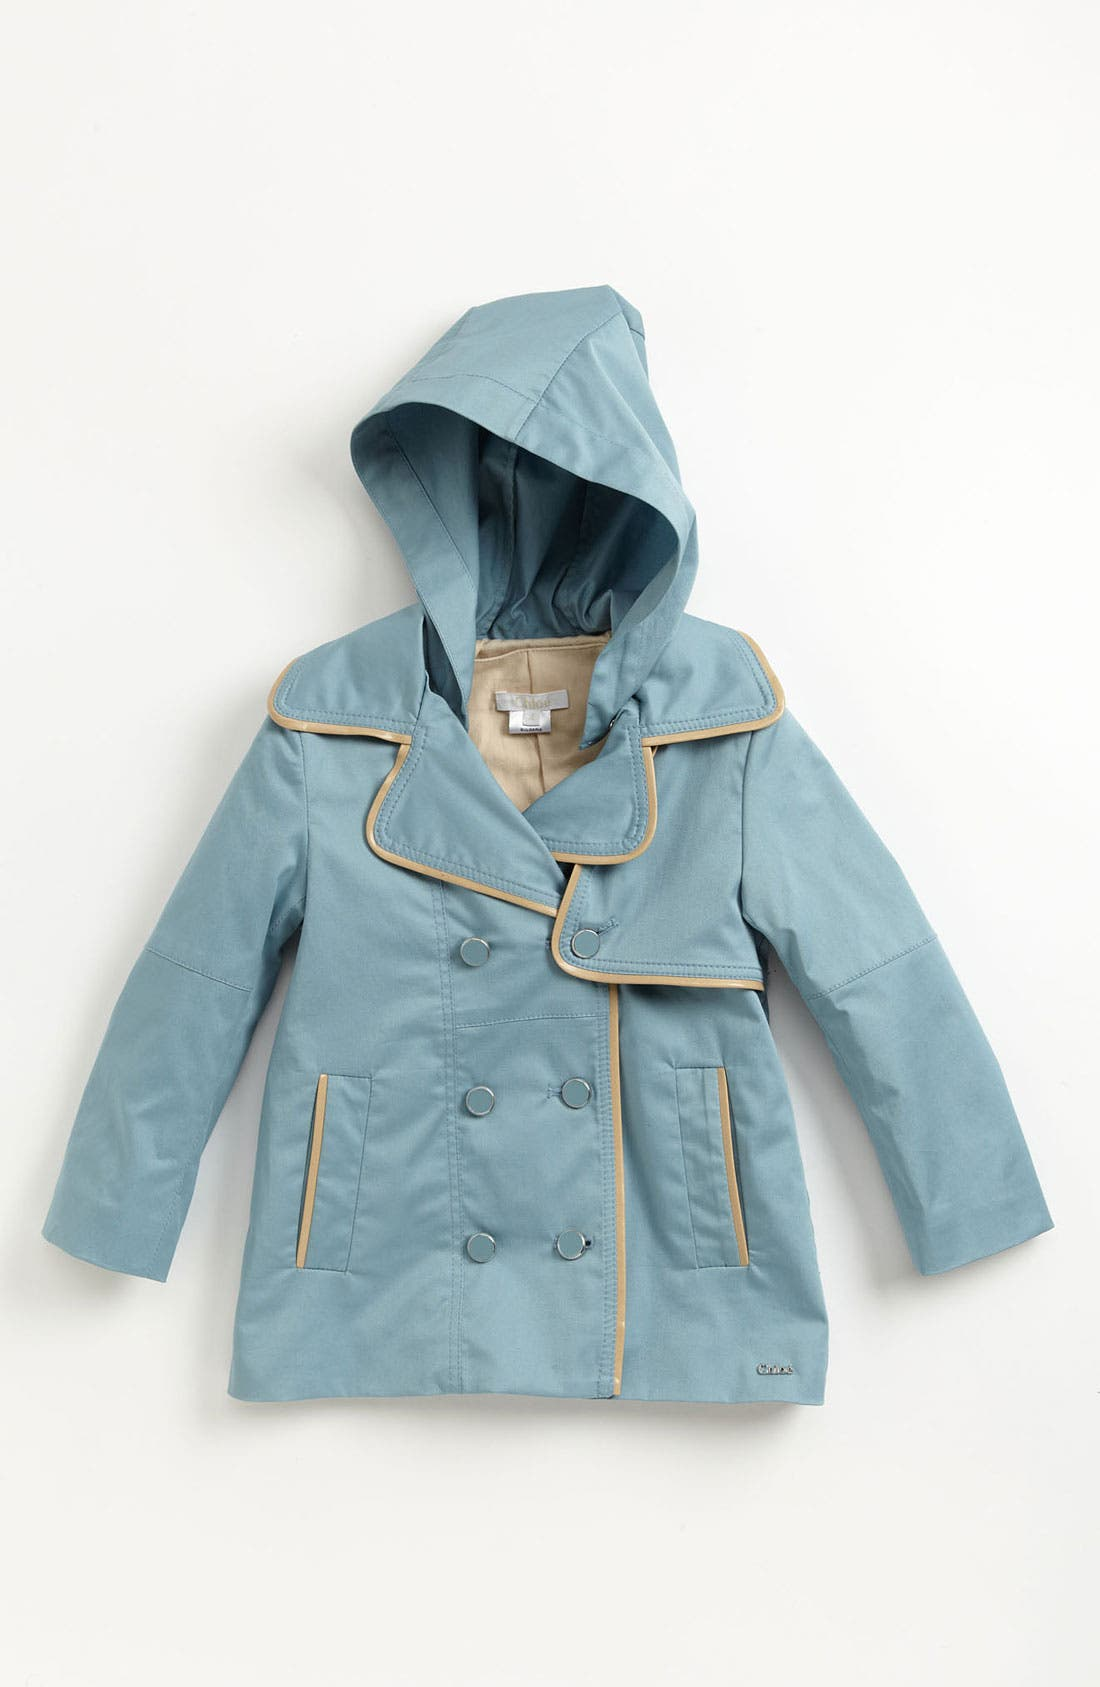 Main Image - Chloé Satin Peacoat (Little Girls & Big Girls)